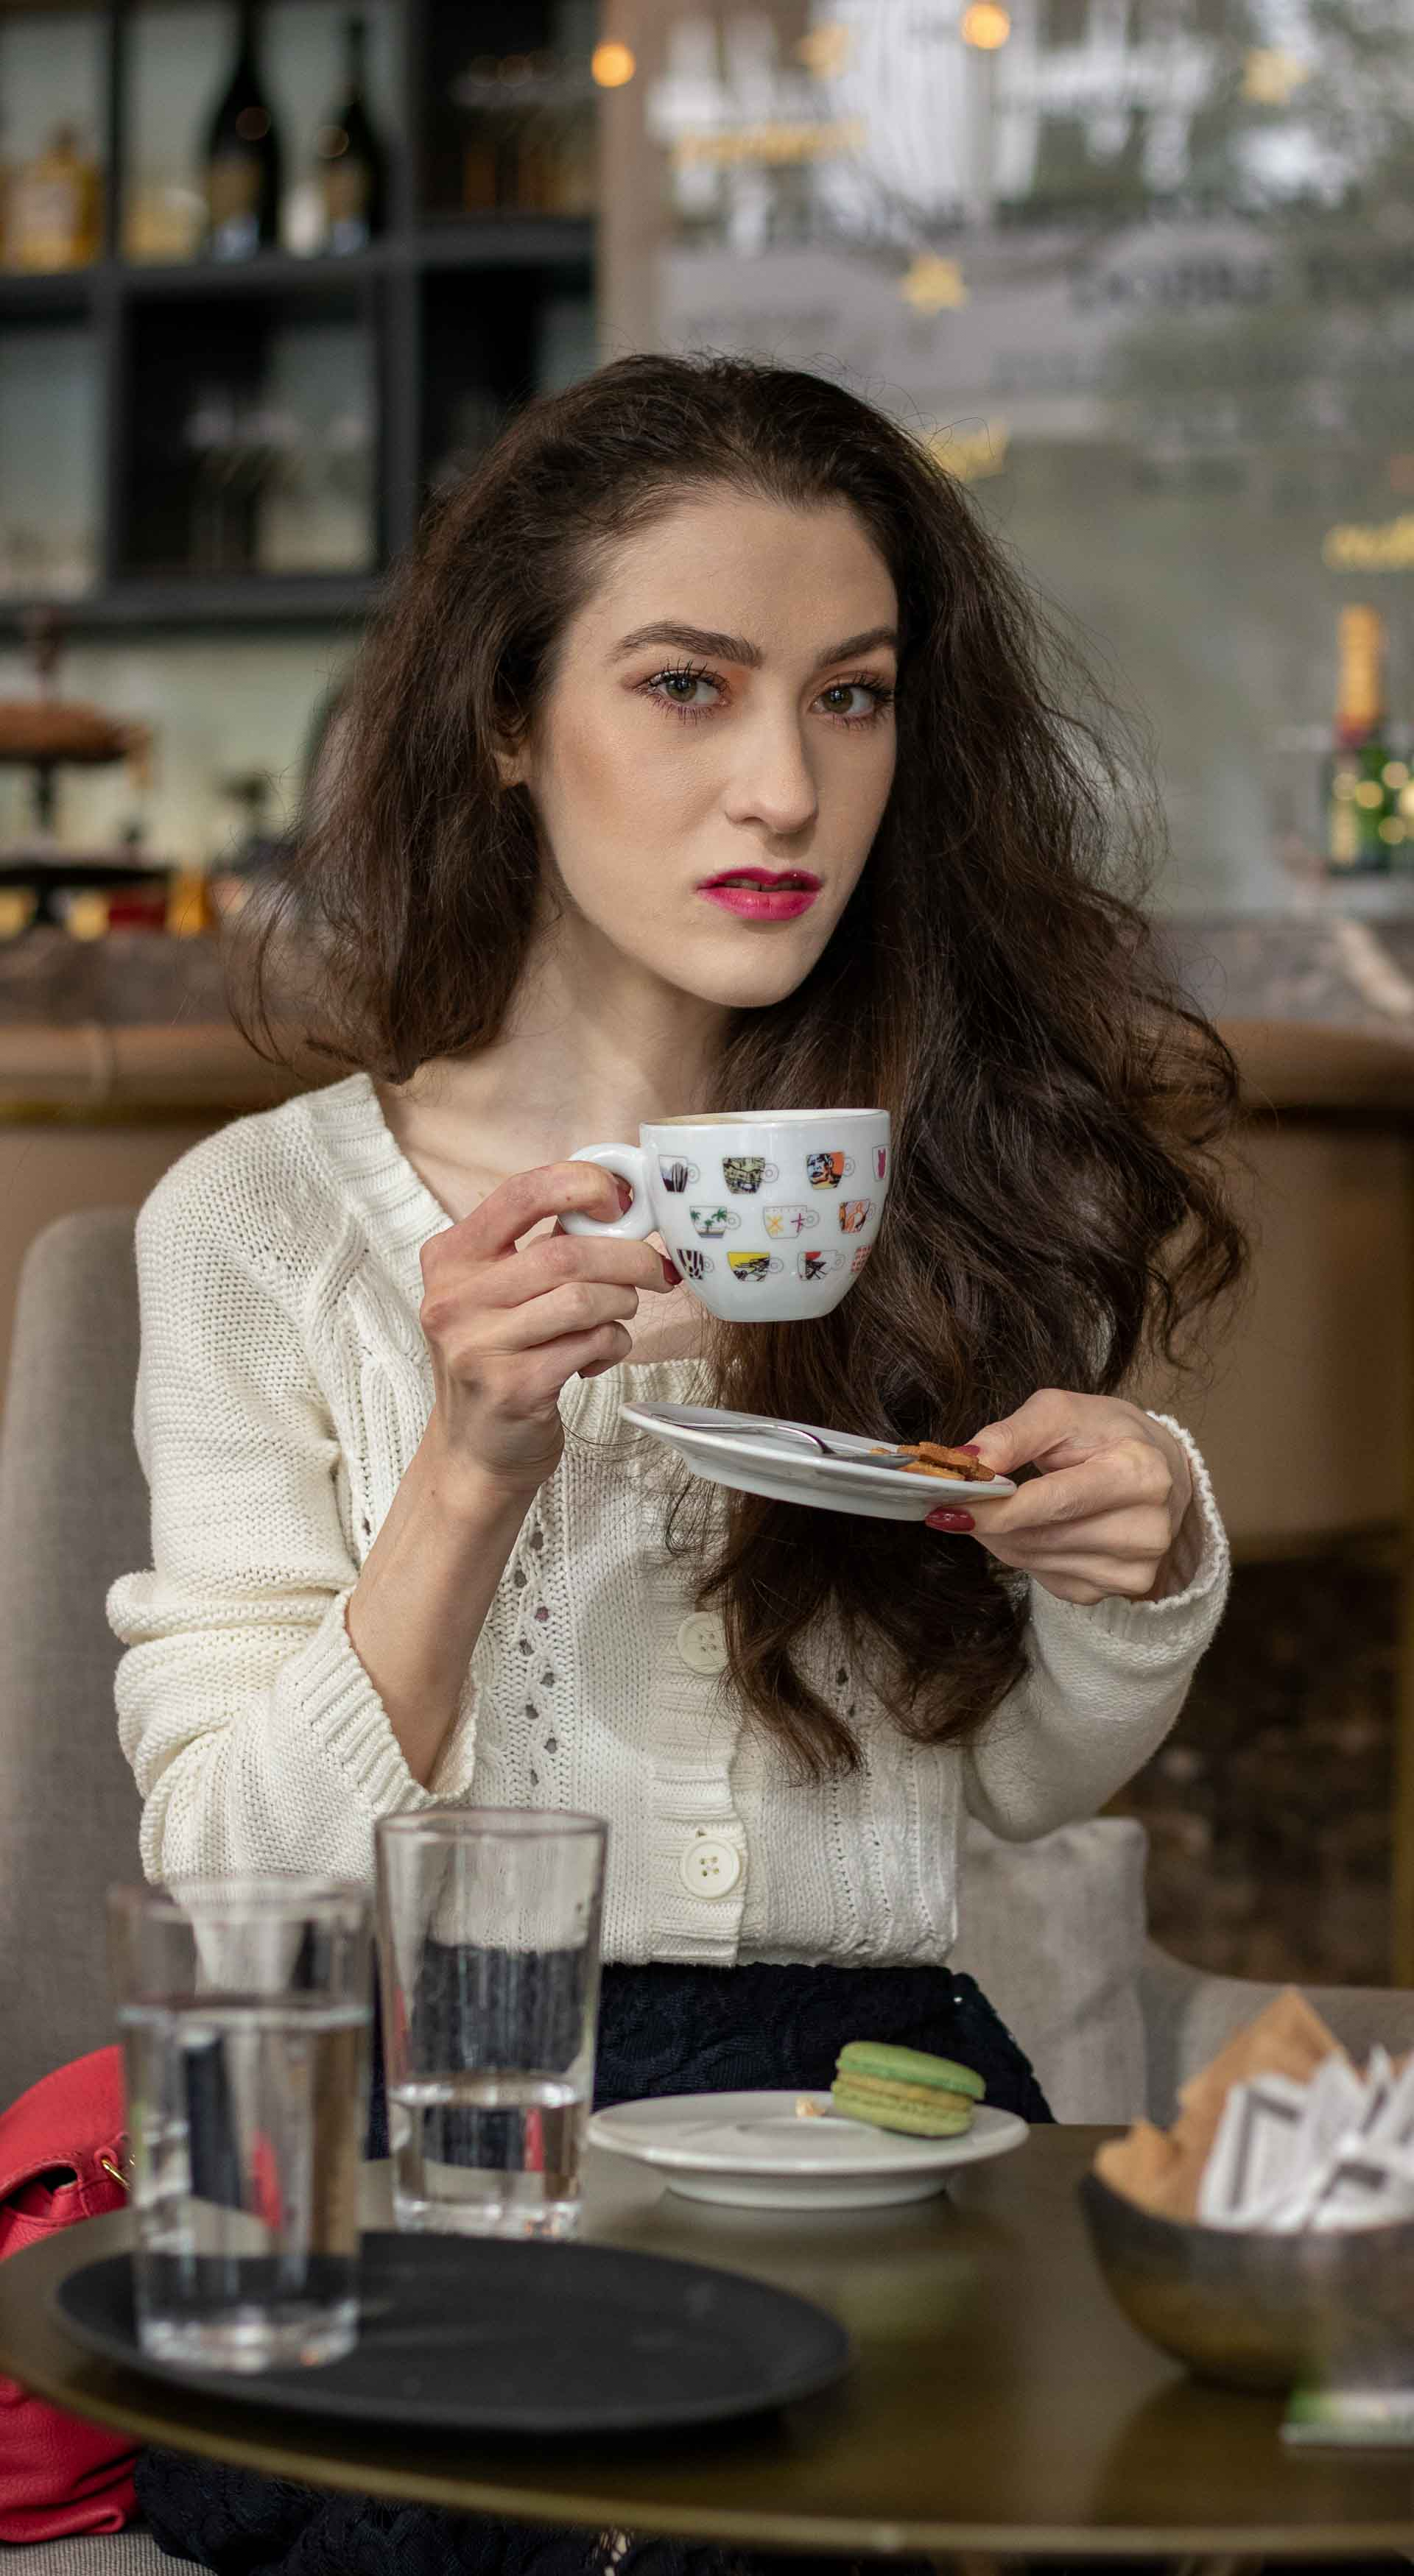 Beautiful Slovenian Fashion Blogger Veronika Lipar of Brunette from Wall wearing white Mango cardigan etude into black lace midi skirt, blue Gianvito Rossi pumps for fall Sunday brunch holding coffee cup